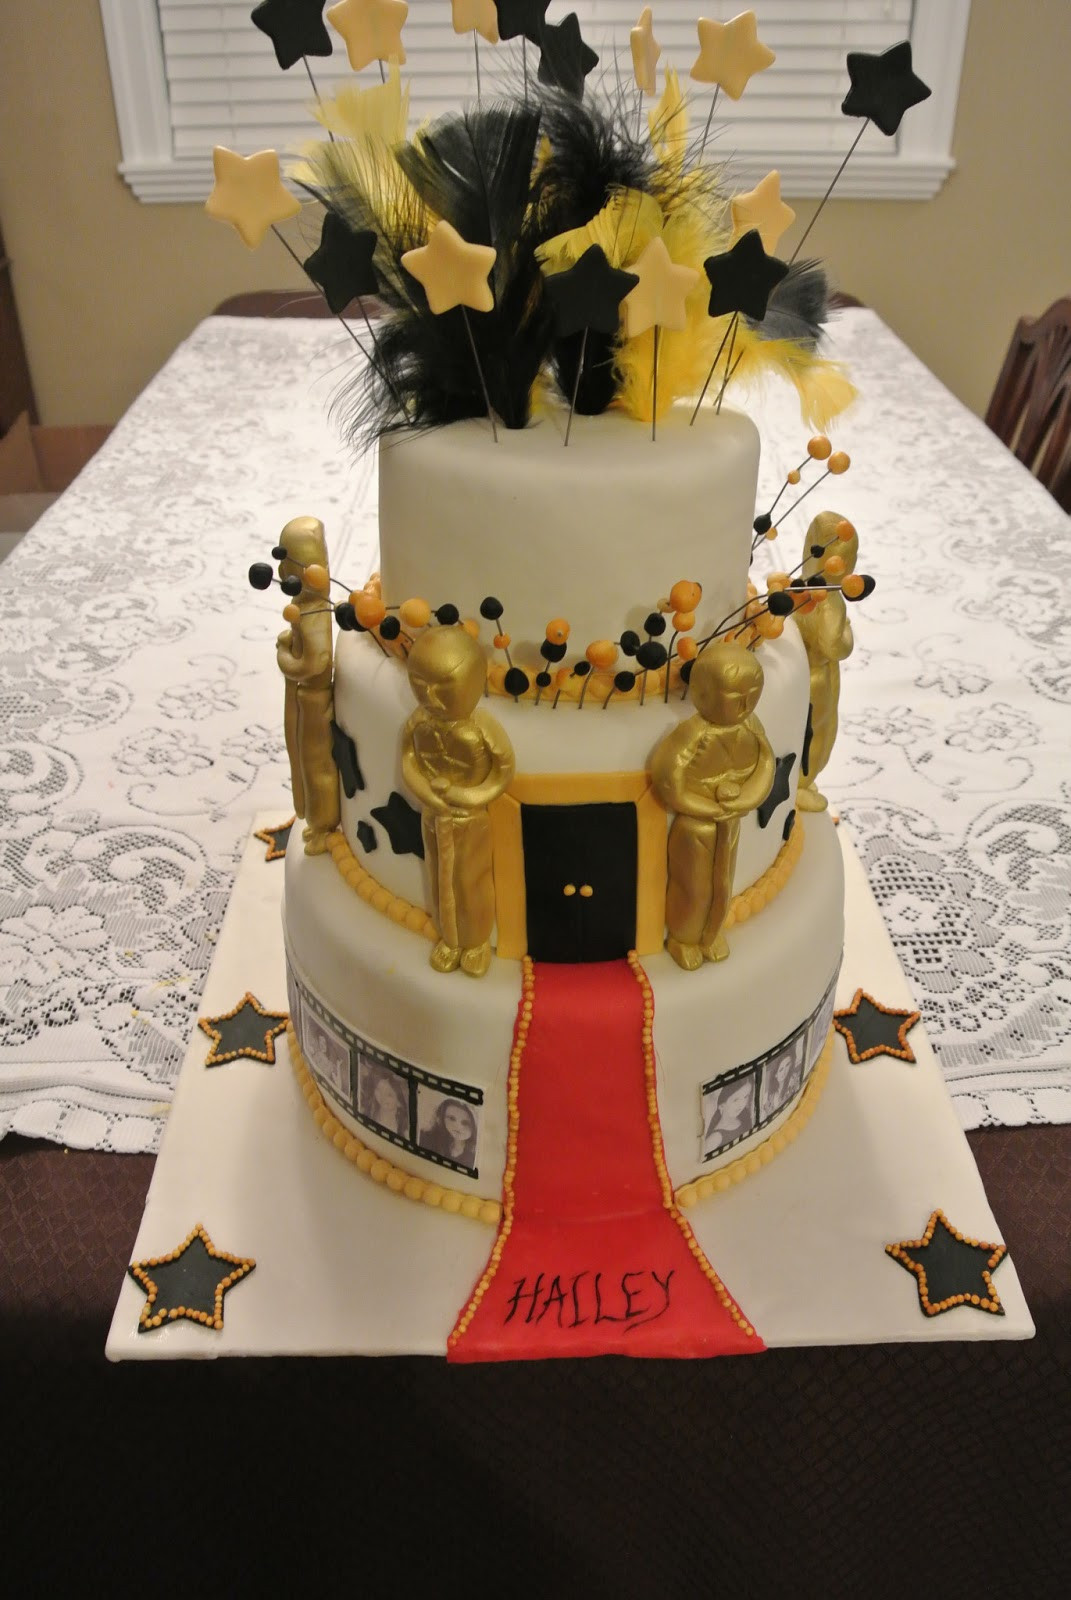 Best ideas about Birthday Party Cake . Save or Pin Larry the Cake Guy Oscar Themed Birthday Cake Now.